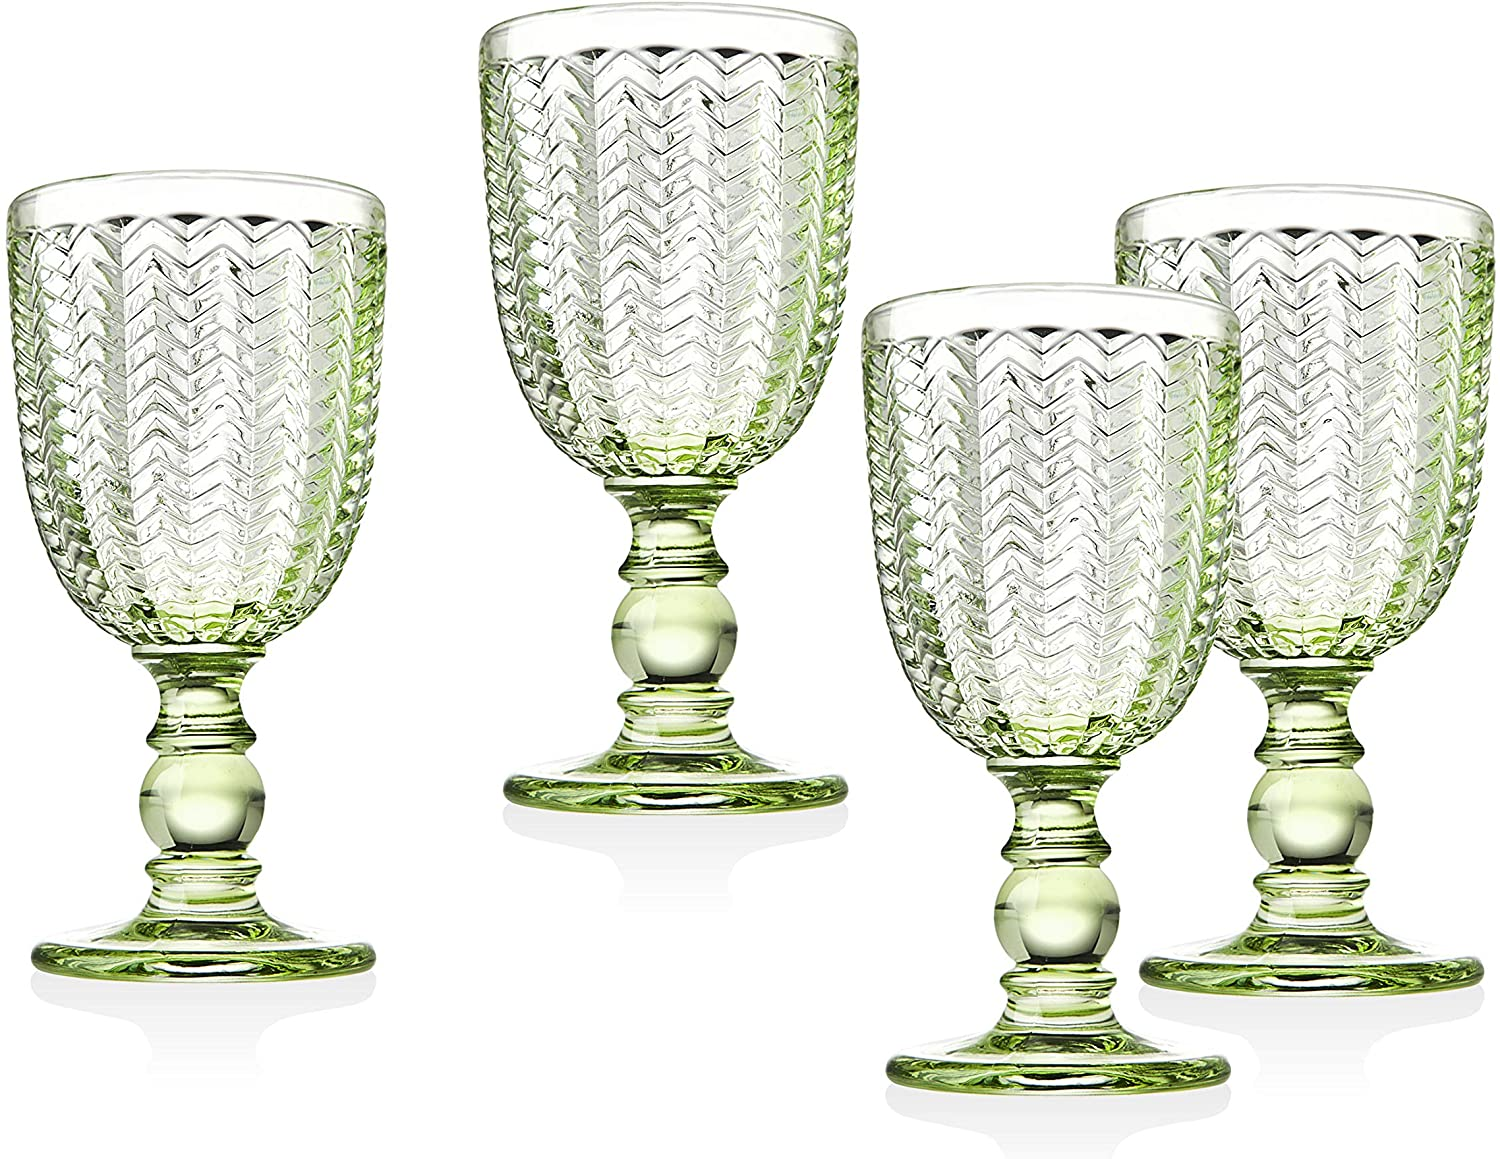 Twill Goblet Beverage Glass Cup by Godinger - Emerald Green - Set of 4